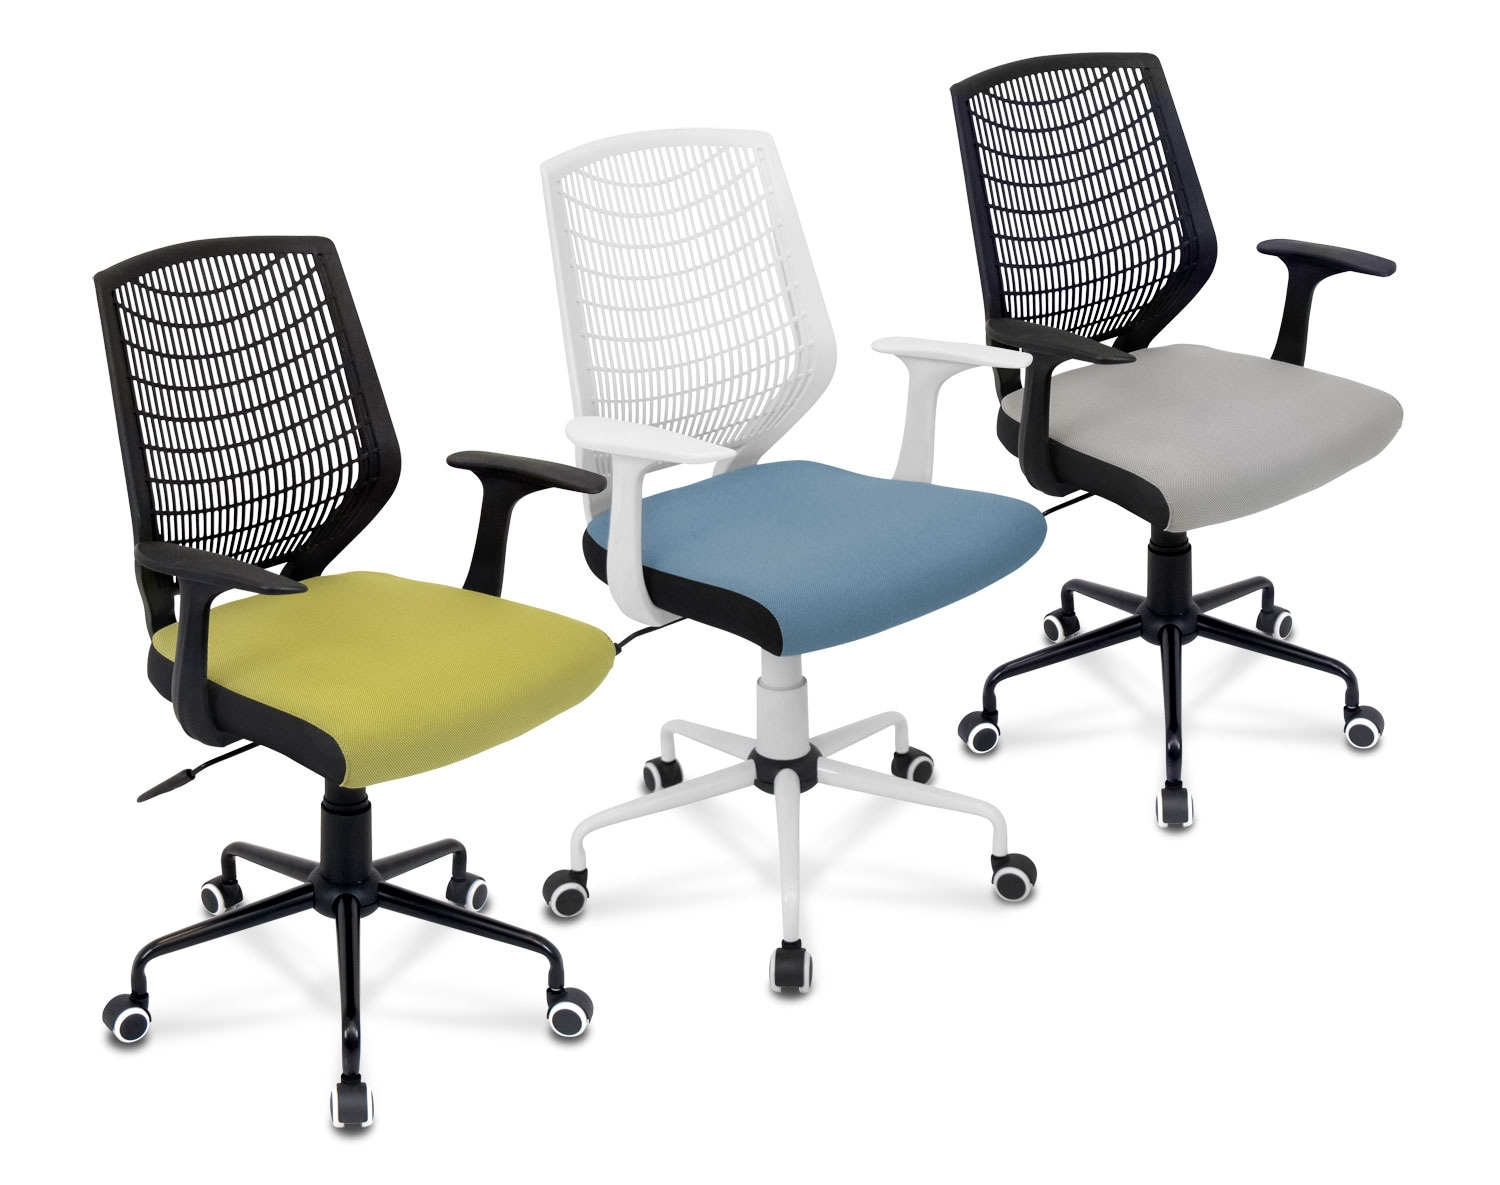 The Helix Office Chair Collection